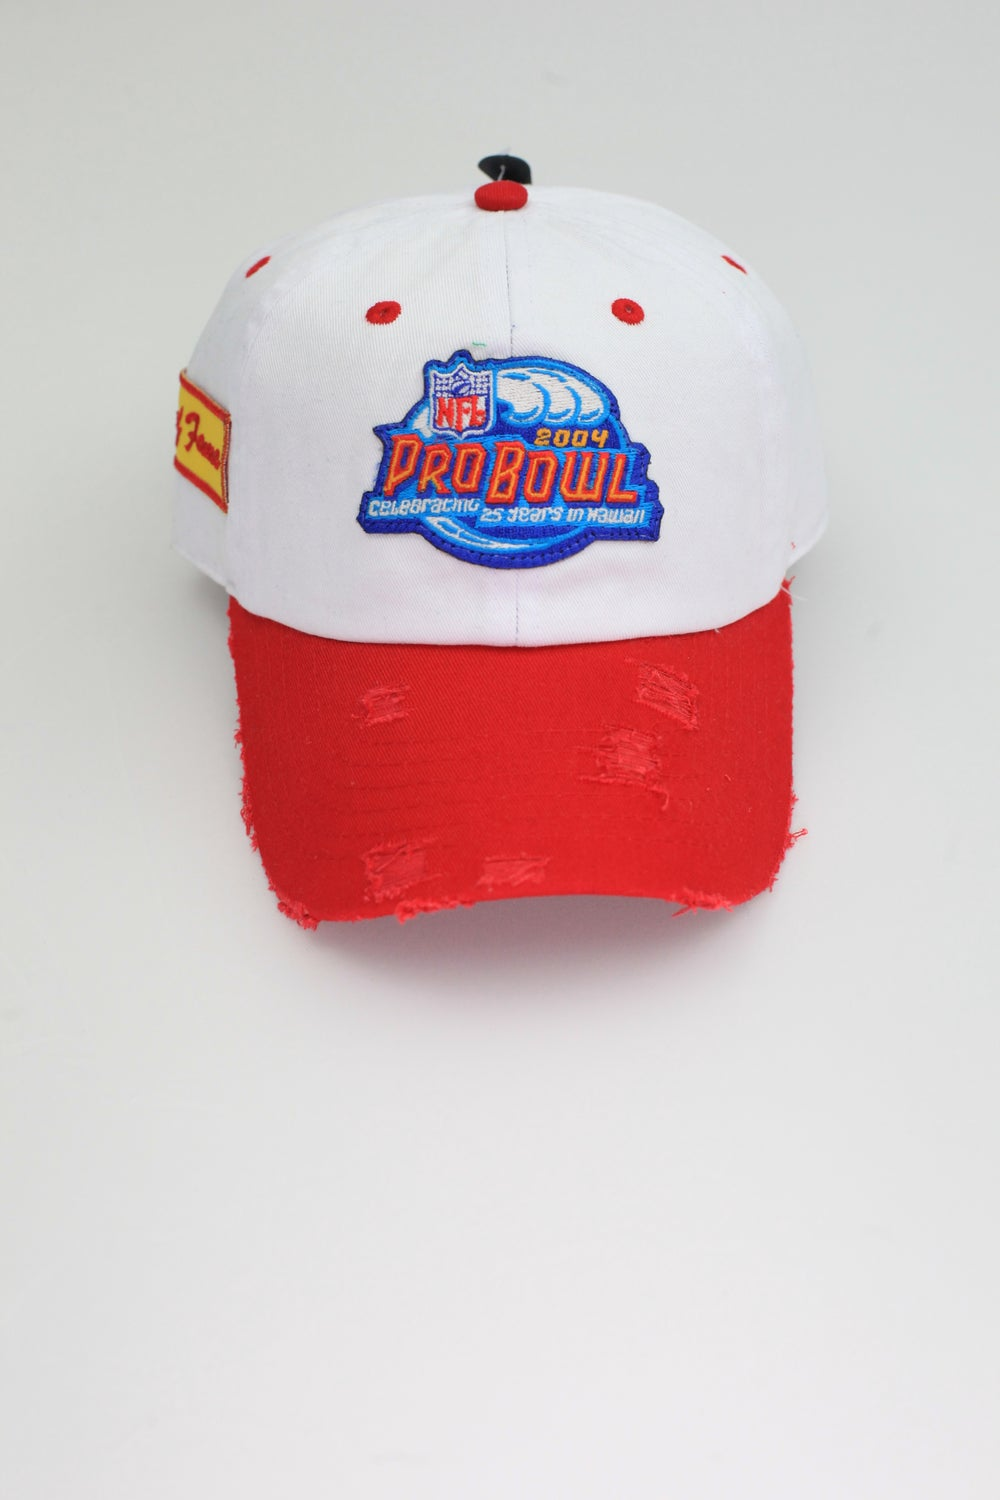 Image of Pro Bowl 2004 2-Tone Distressed Dad Hat